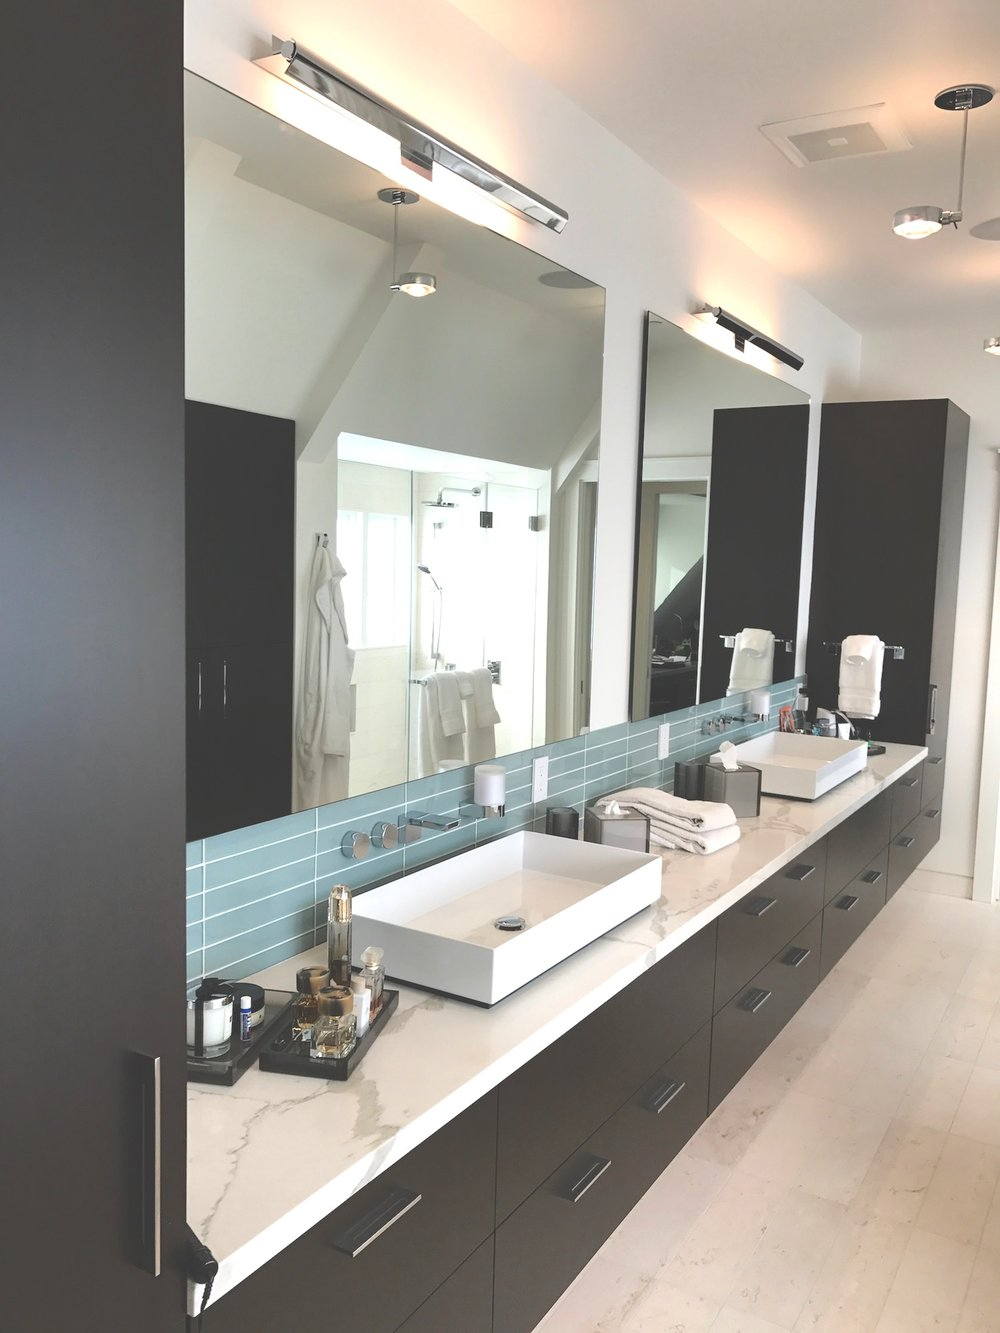 tbg-bathroom-1.jpg